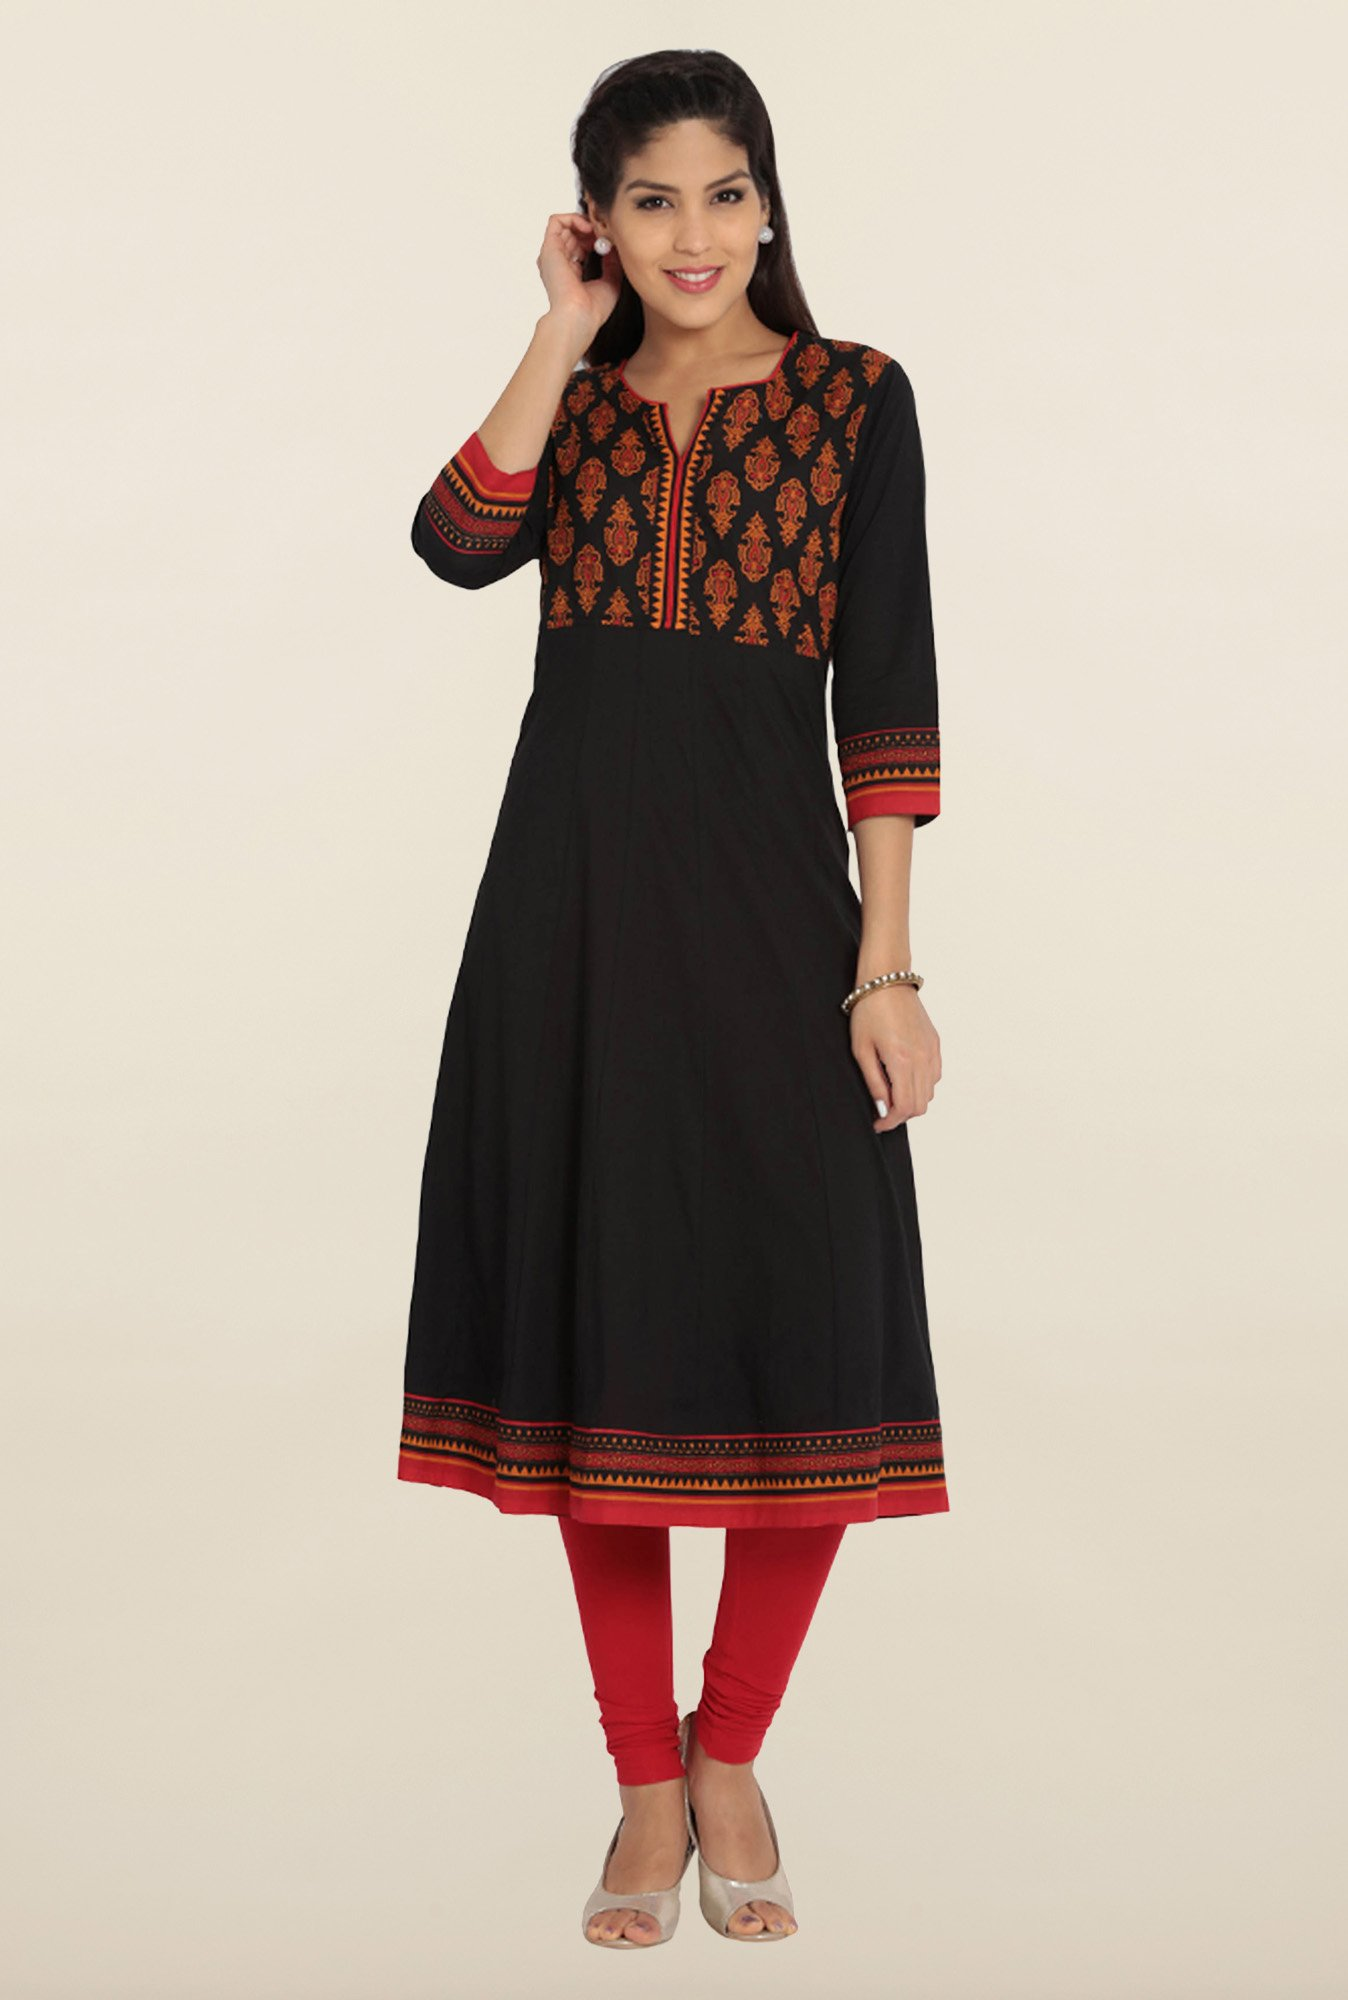 Soch Black Cotton Anarkali Kurta